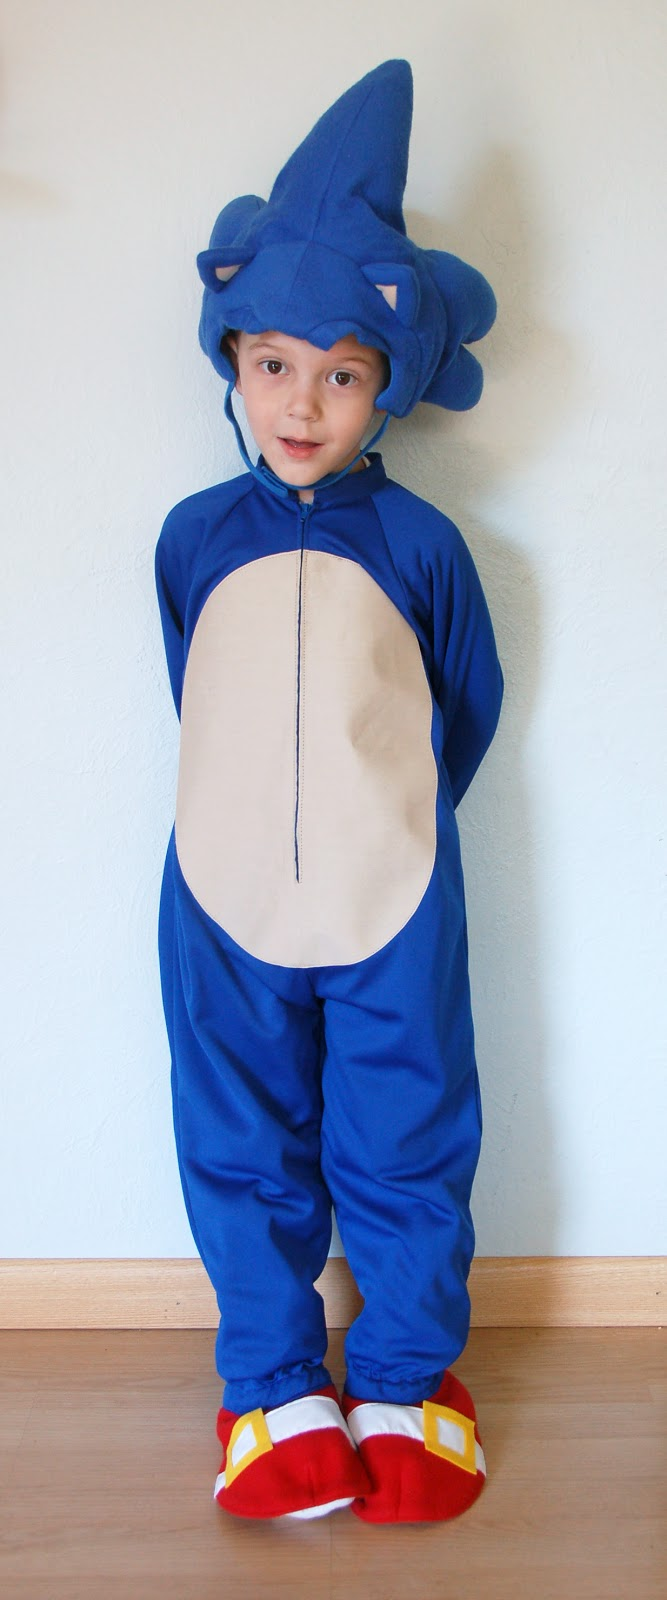 The Almost Perfectionist Sonic The Hedgehog Halloween Costume